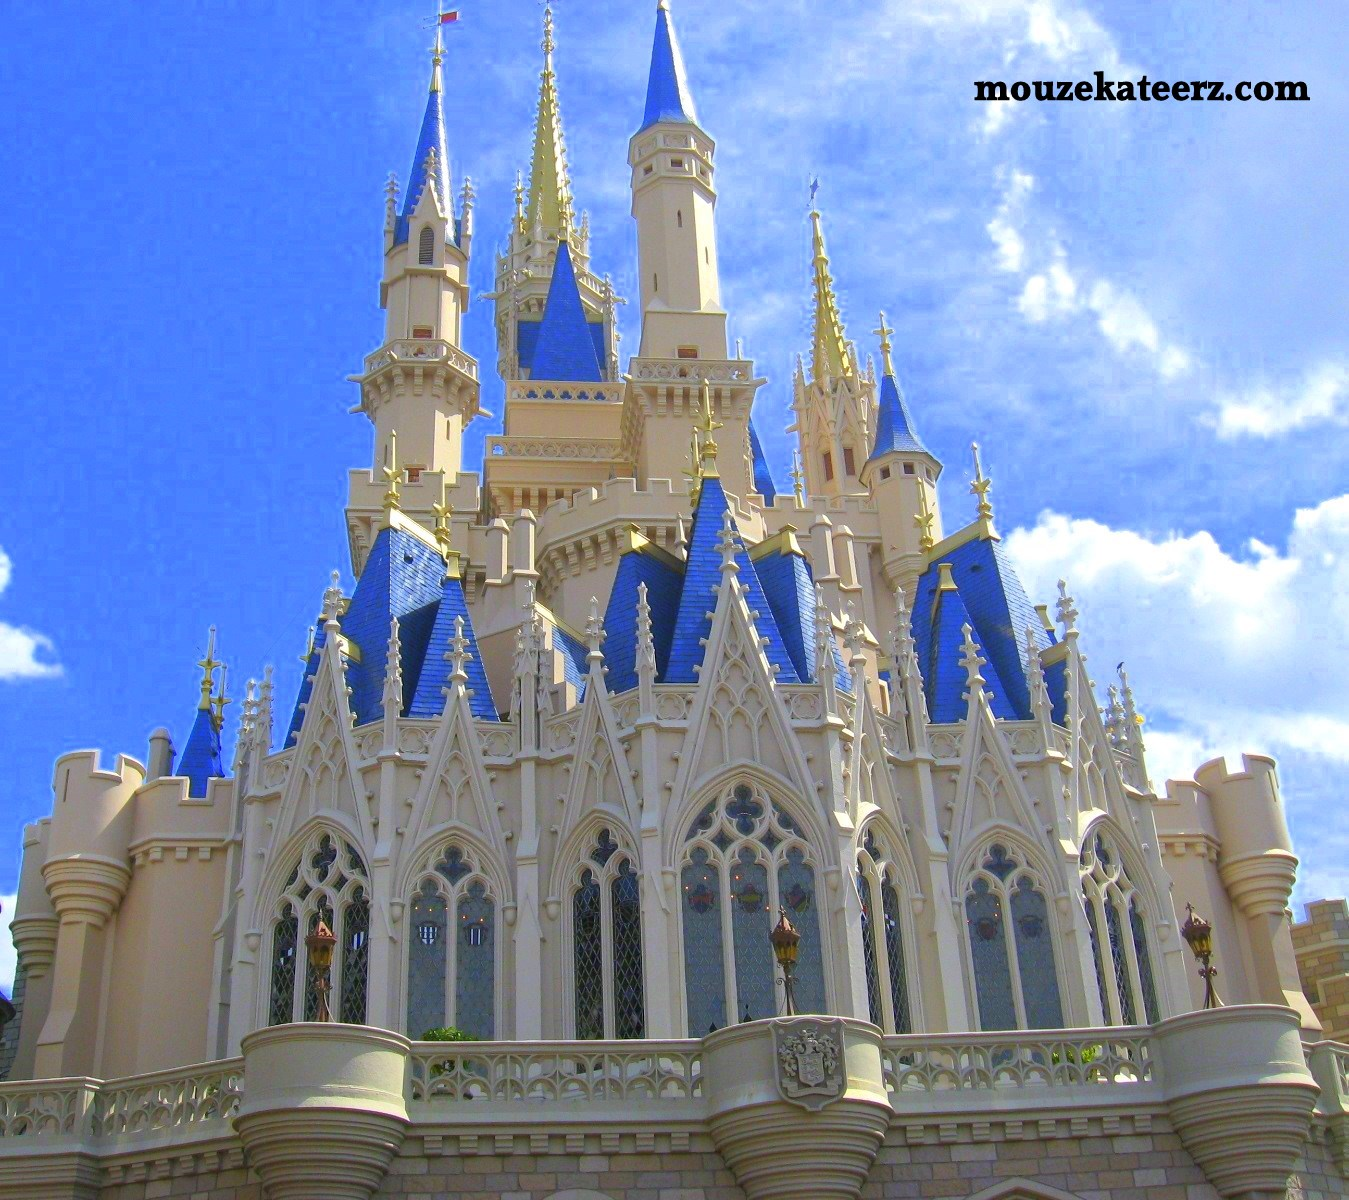 Apartments Near Disney World: Disney By The Numbers: Photographing Cinderella Castle